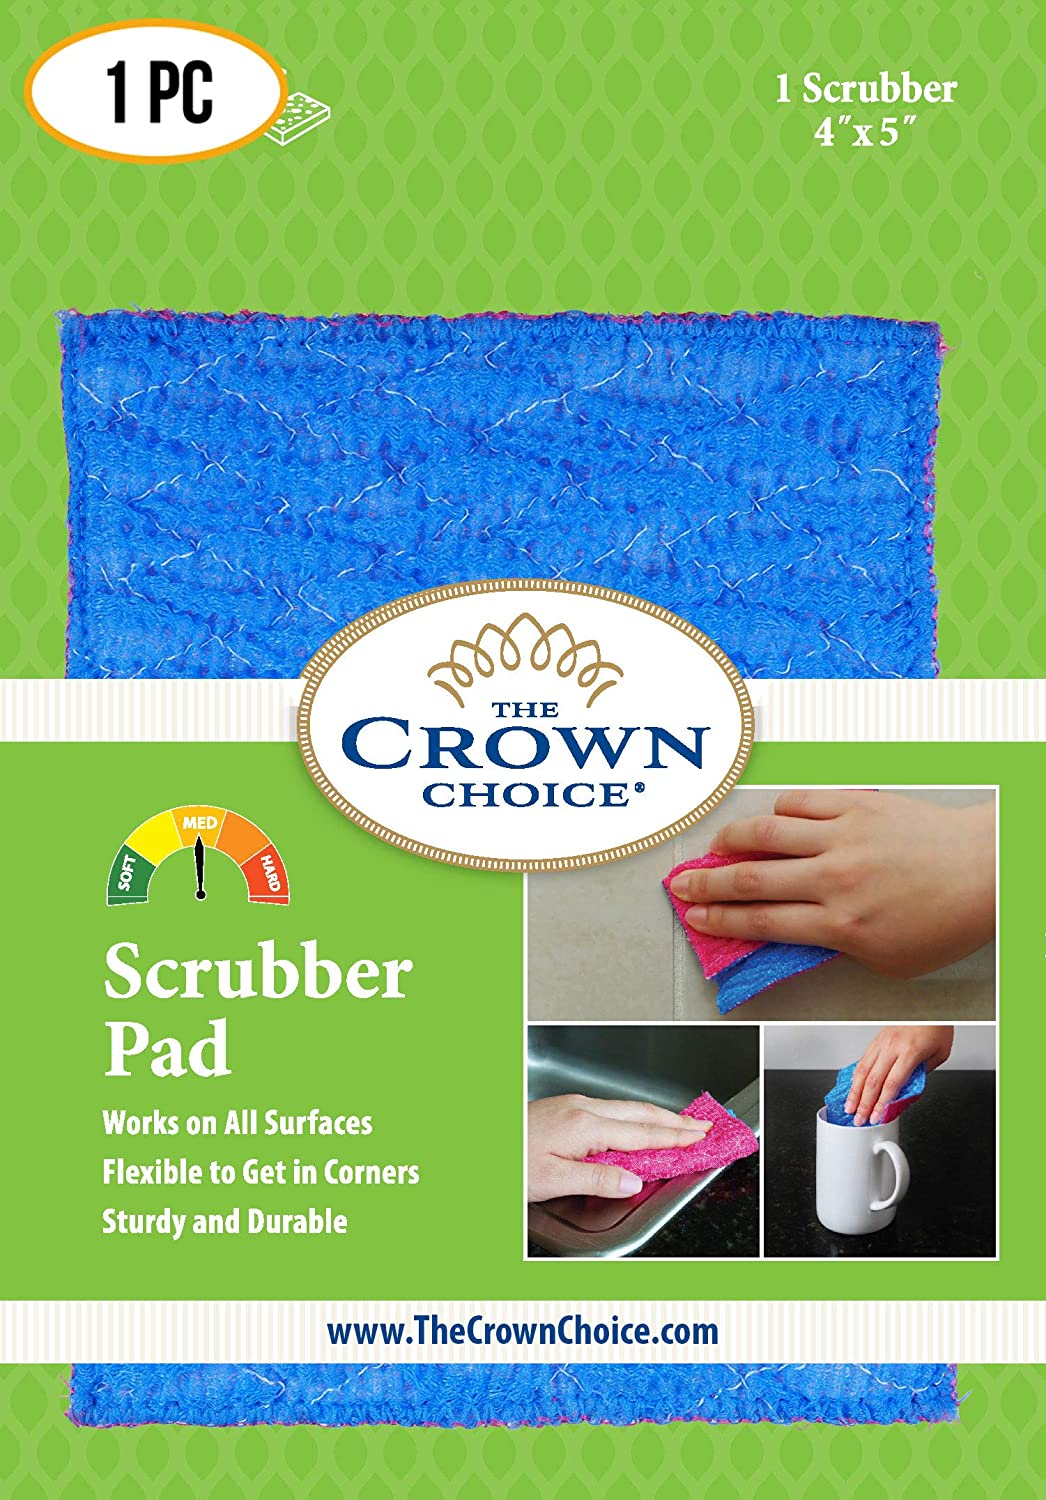 ODOR FREE Scrubbing Pad (1Pk) for Dishwashing and Cleaning | Strong & Scratch Free Scrubber | VERY Durable and Tough Scrub Sponge | No Mildew Smell from Sponges, Dishcloth, Cotton.